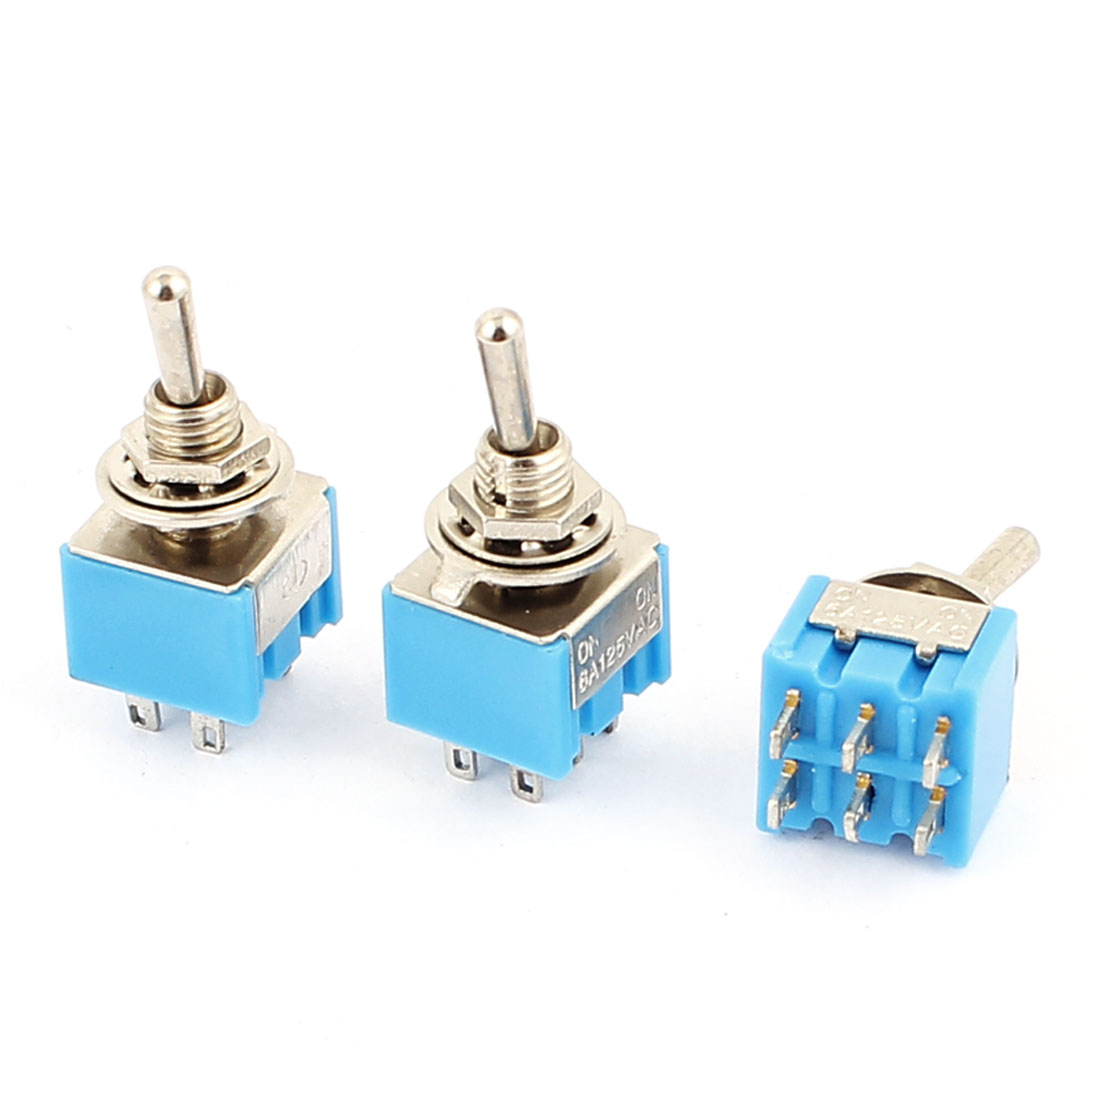 AC 125V 6A DPDT ON-ON 2 Positions 6-pin Latching Miniature Toggle Switch 3 Pcs